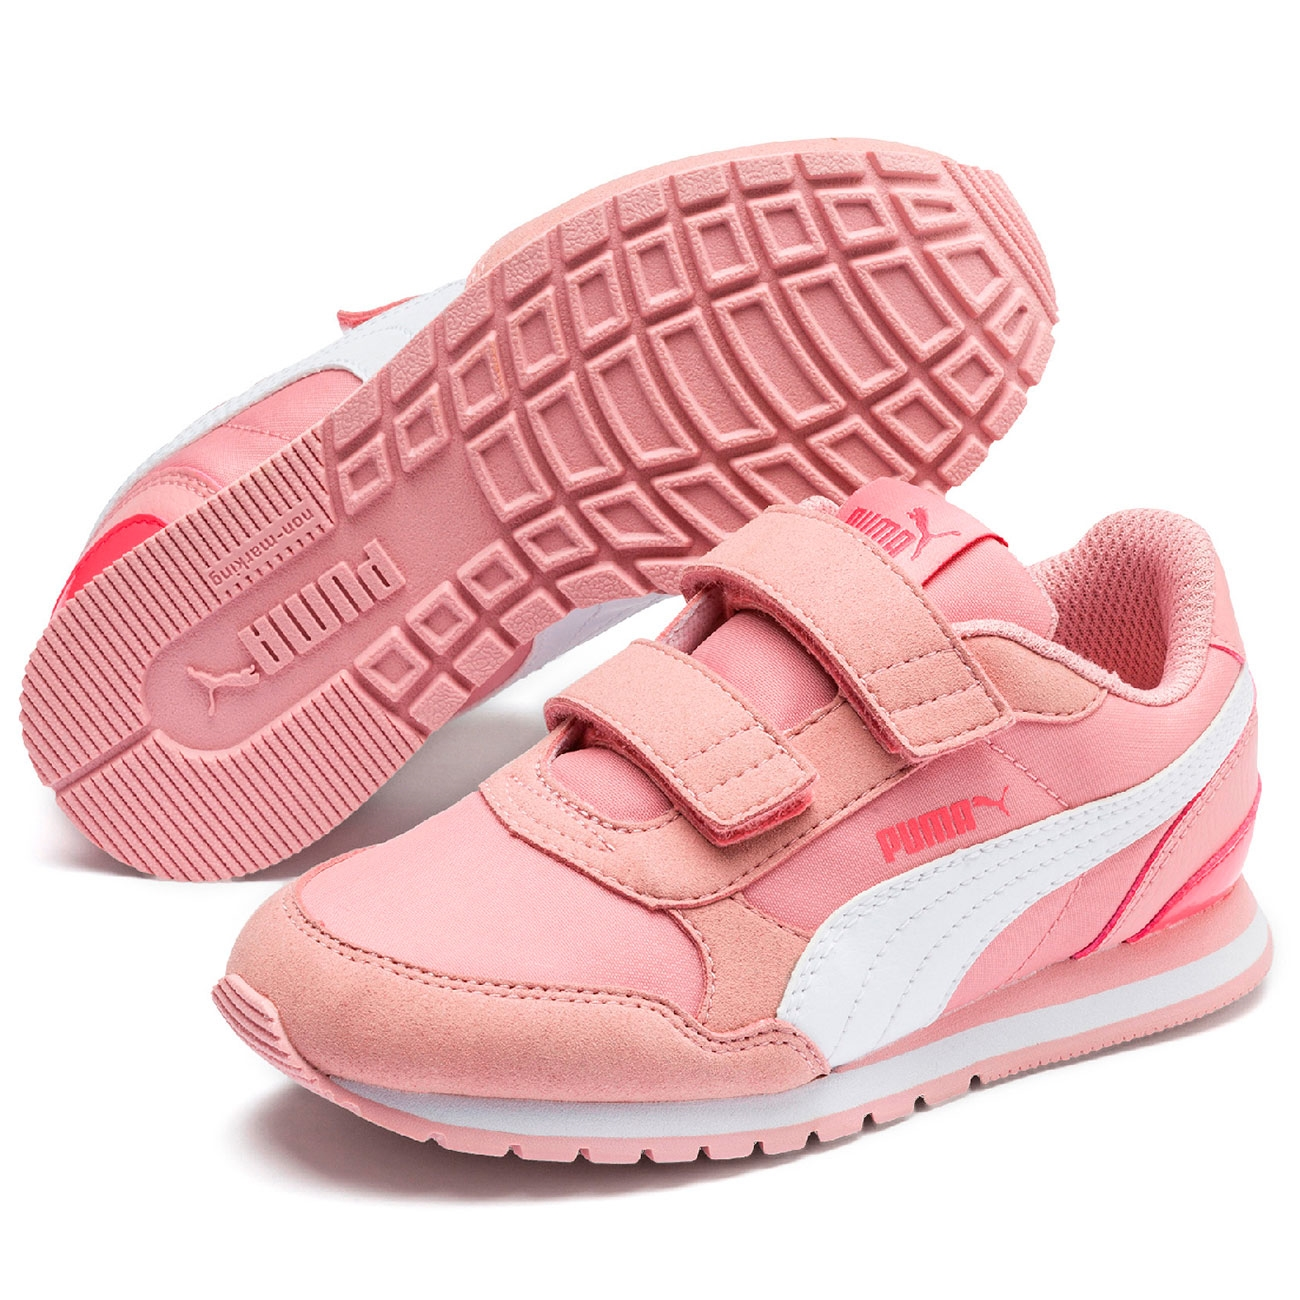 b624572fb7e Puma Sneakers ST Runner v2 NL Bridal Rose/ White